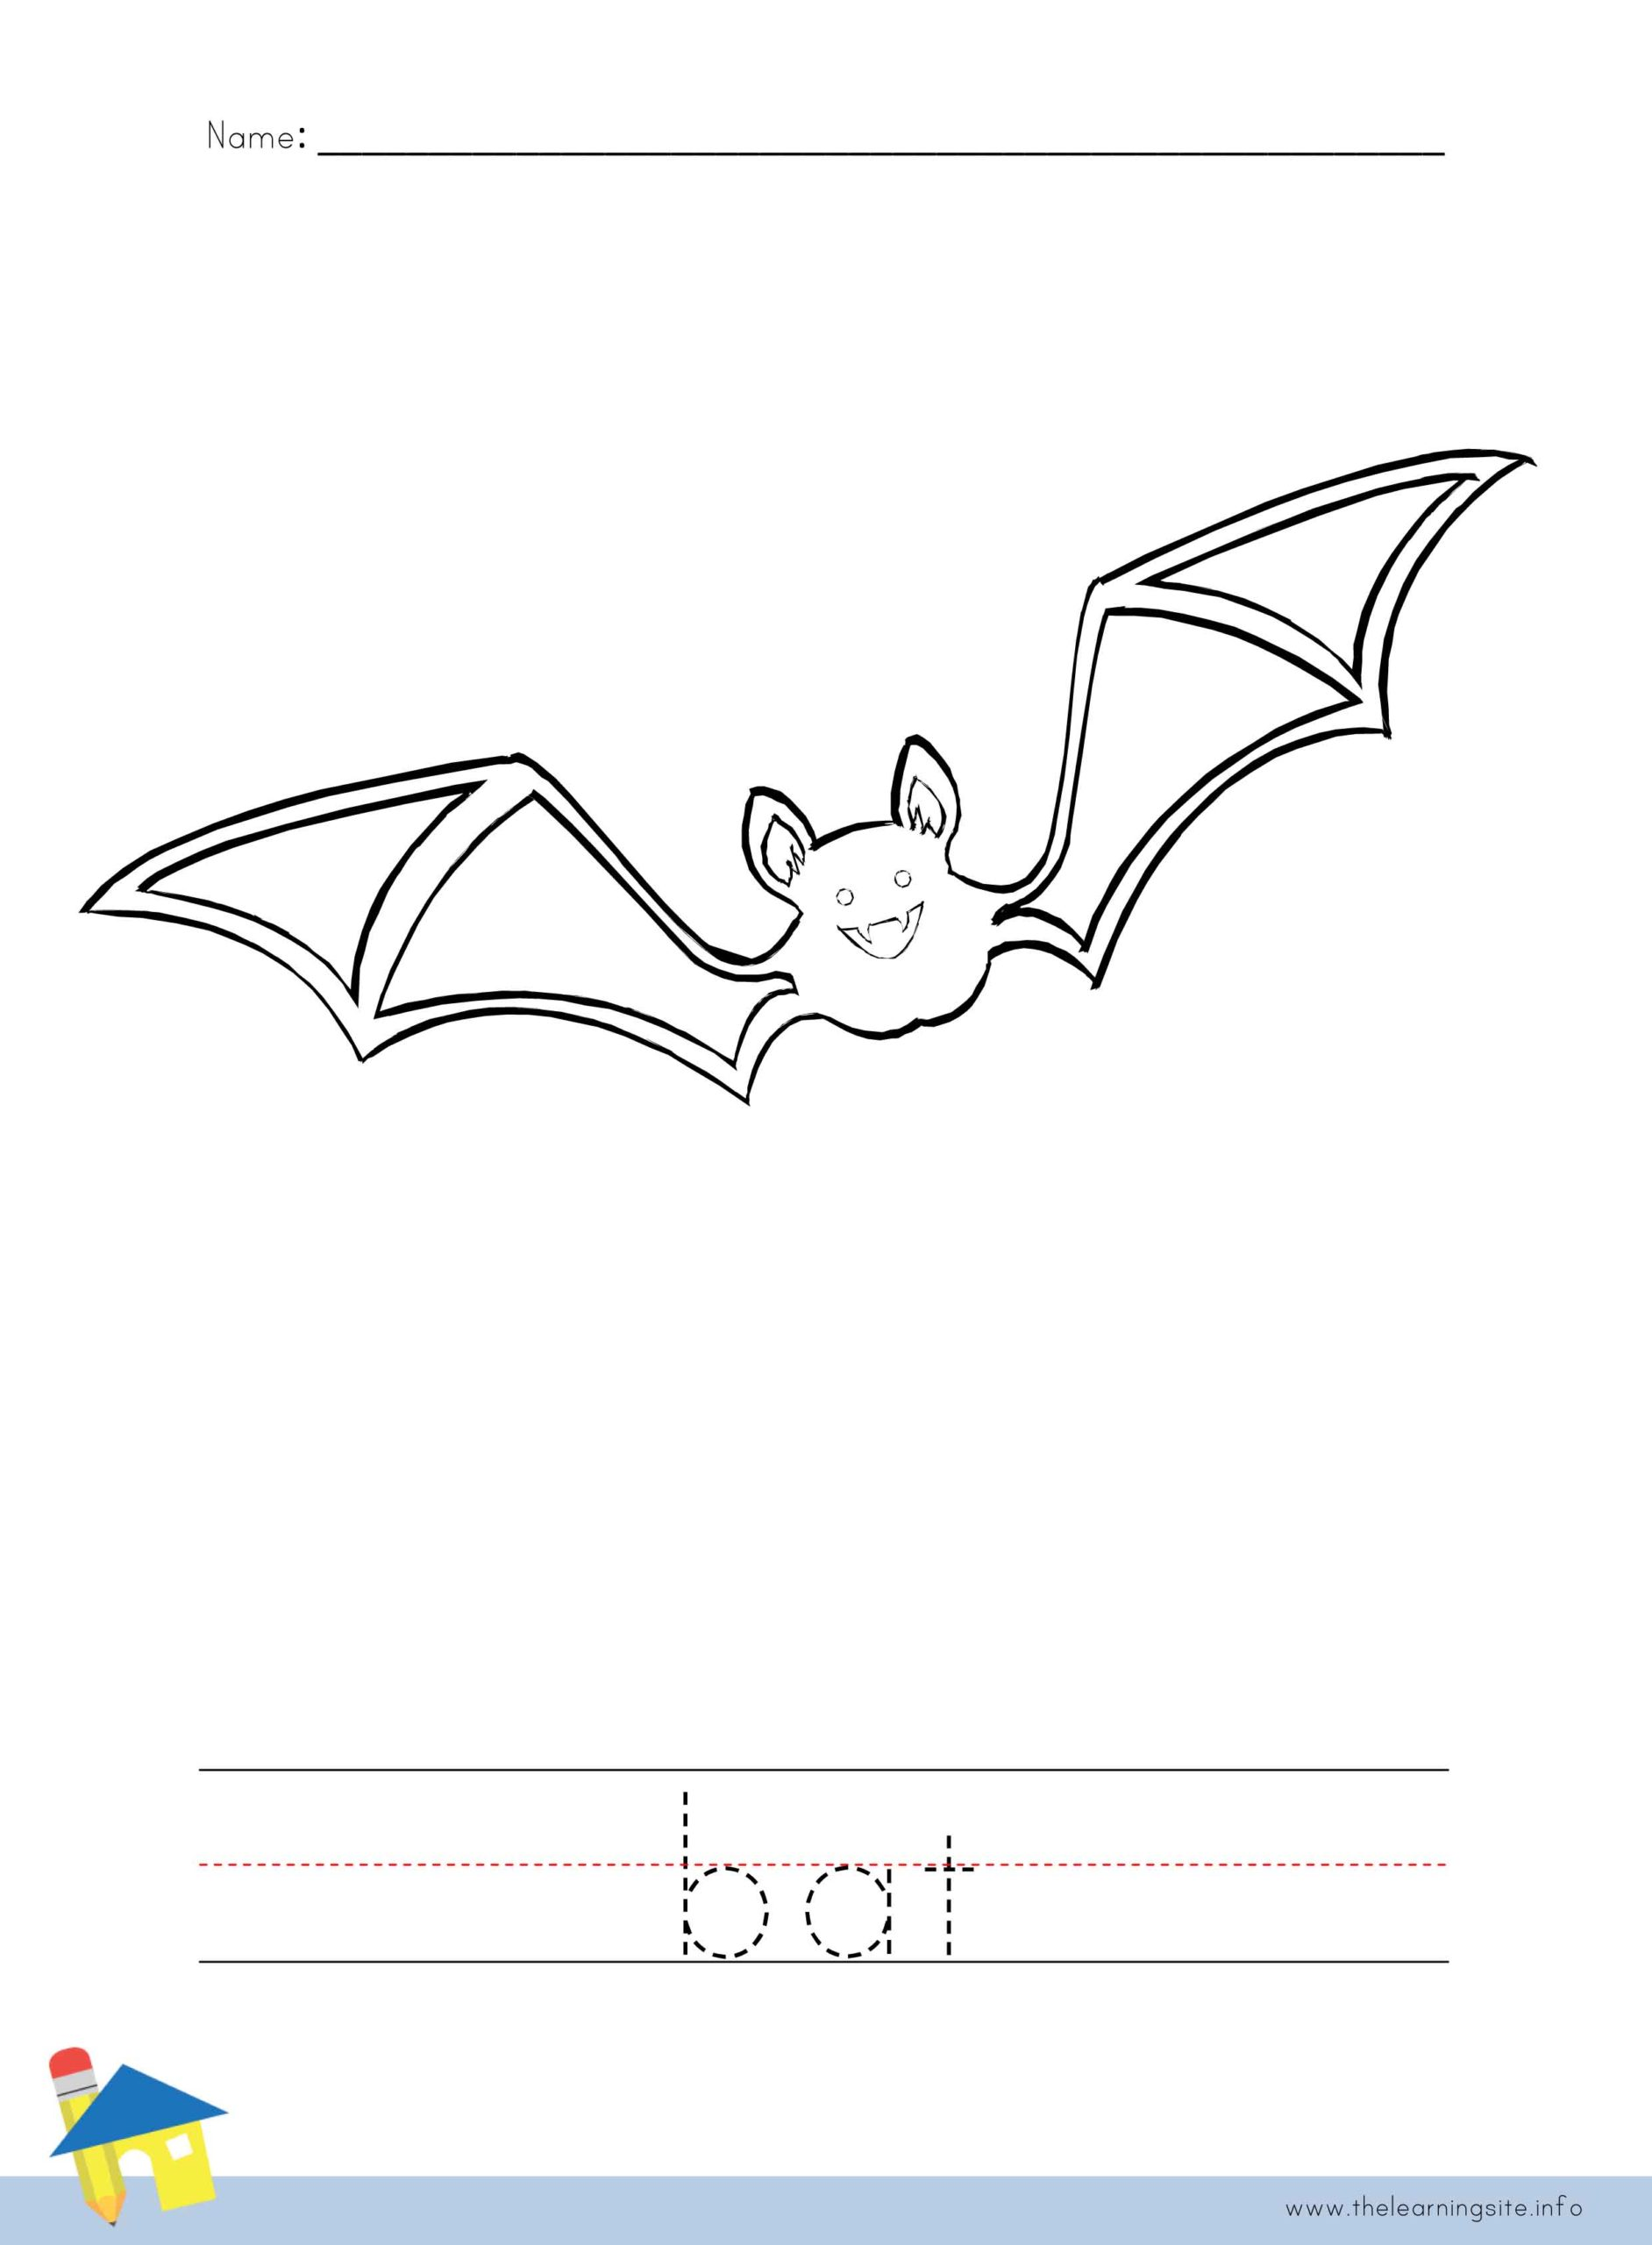 Bat Coloring Worksheet The Learning Site